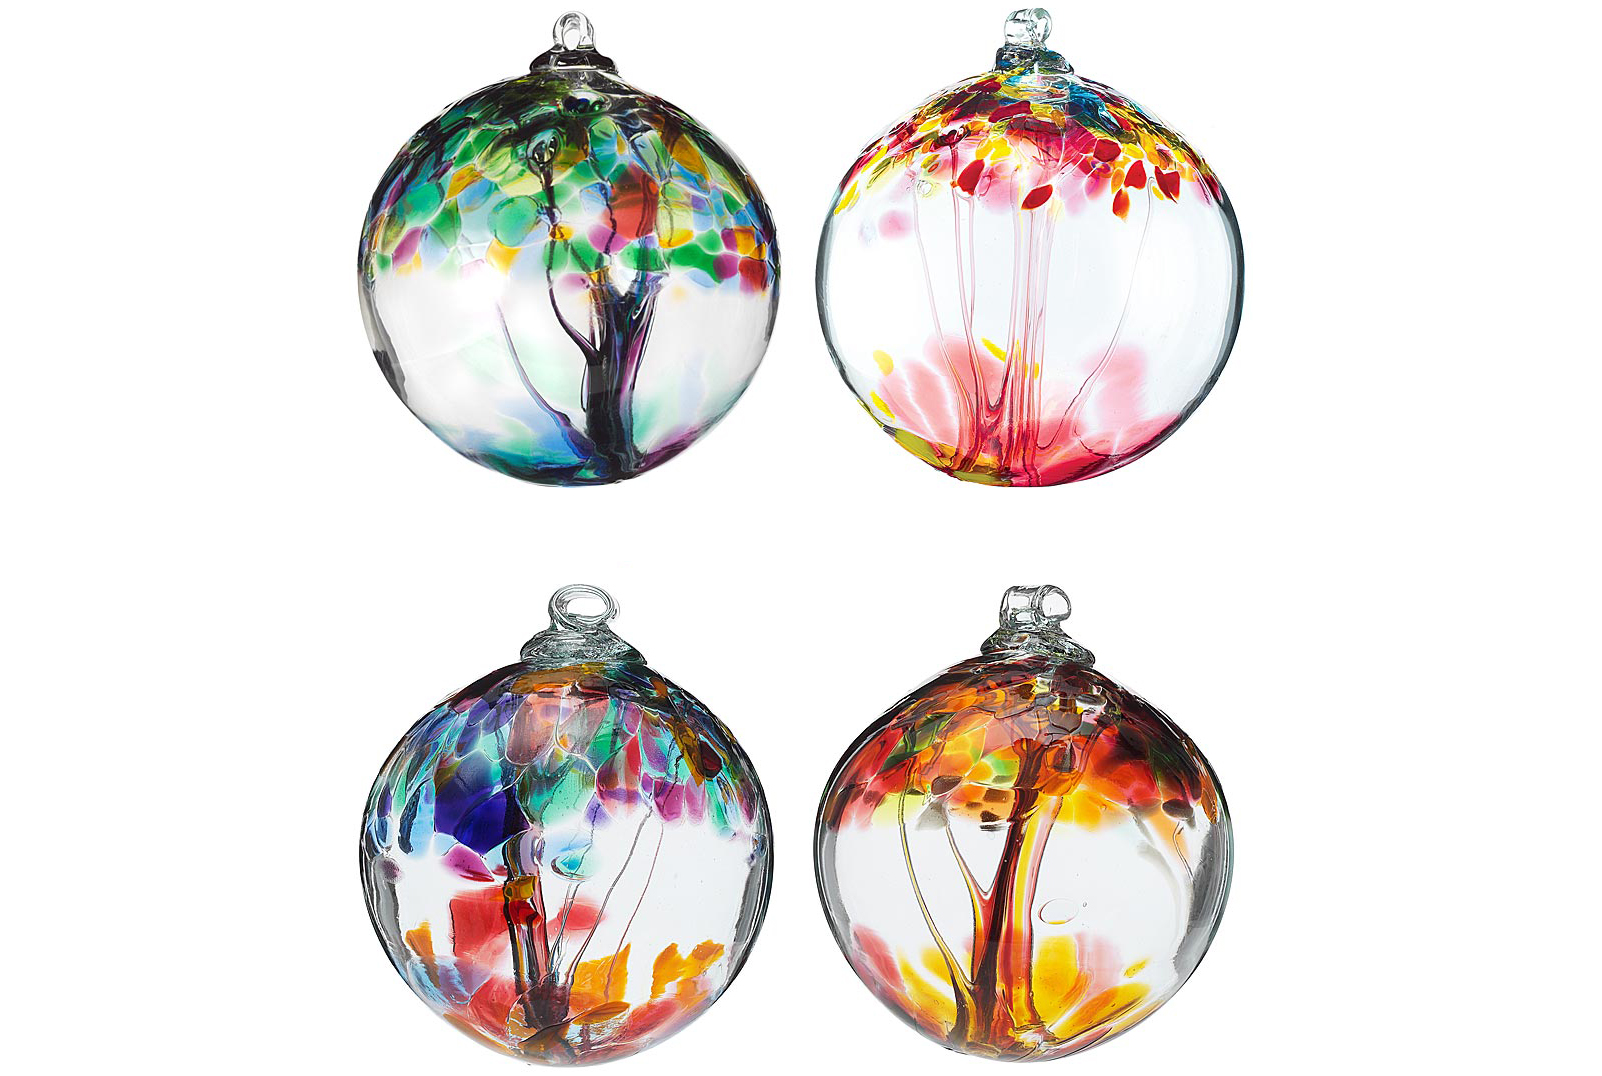 Recycled Glass Globes